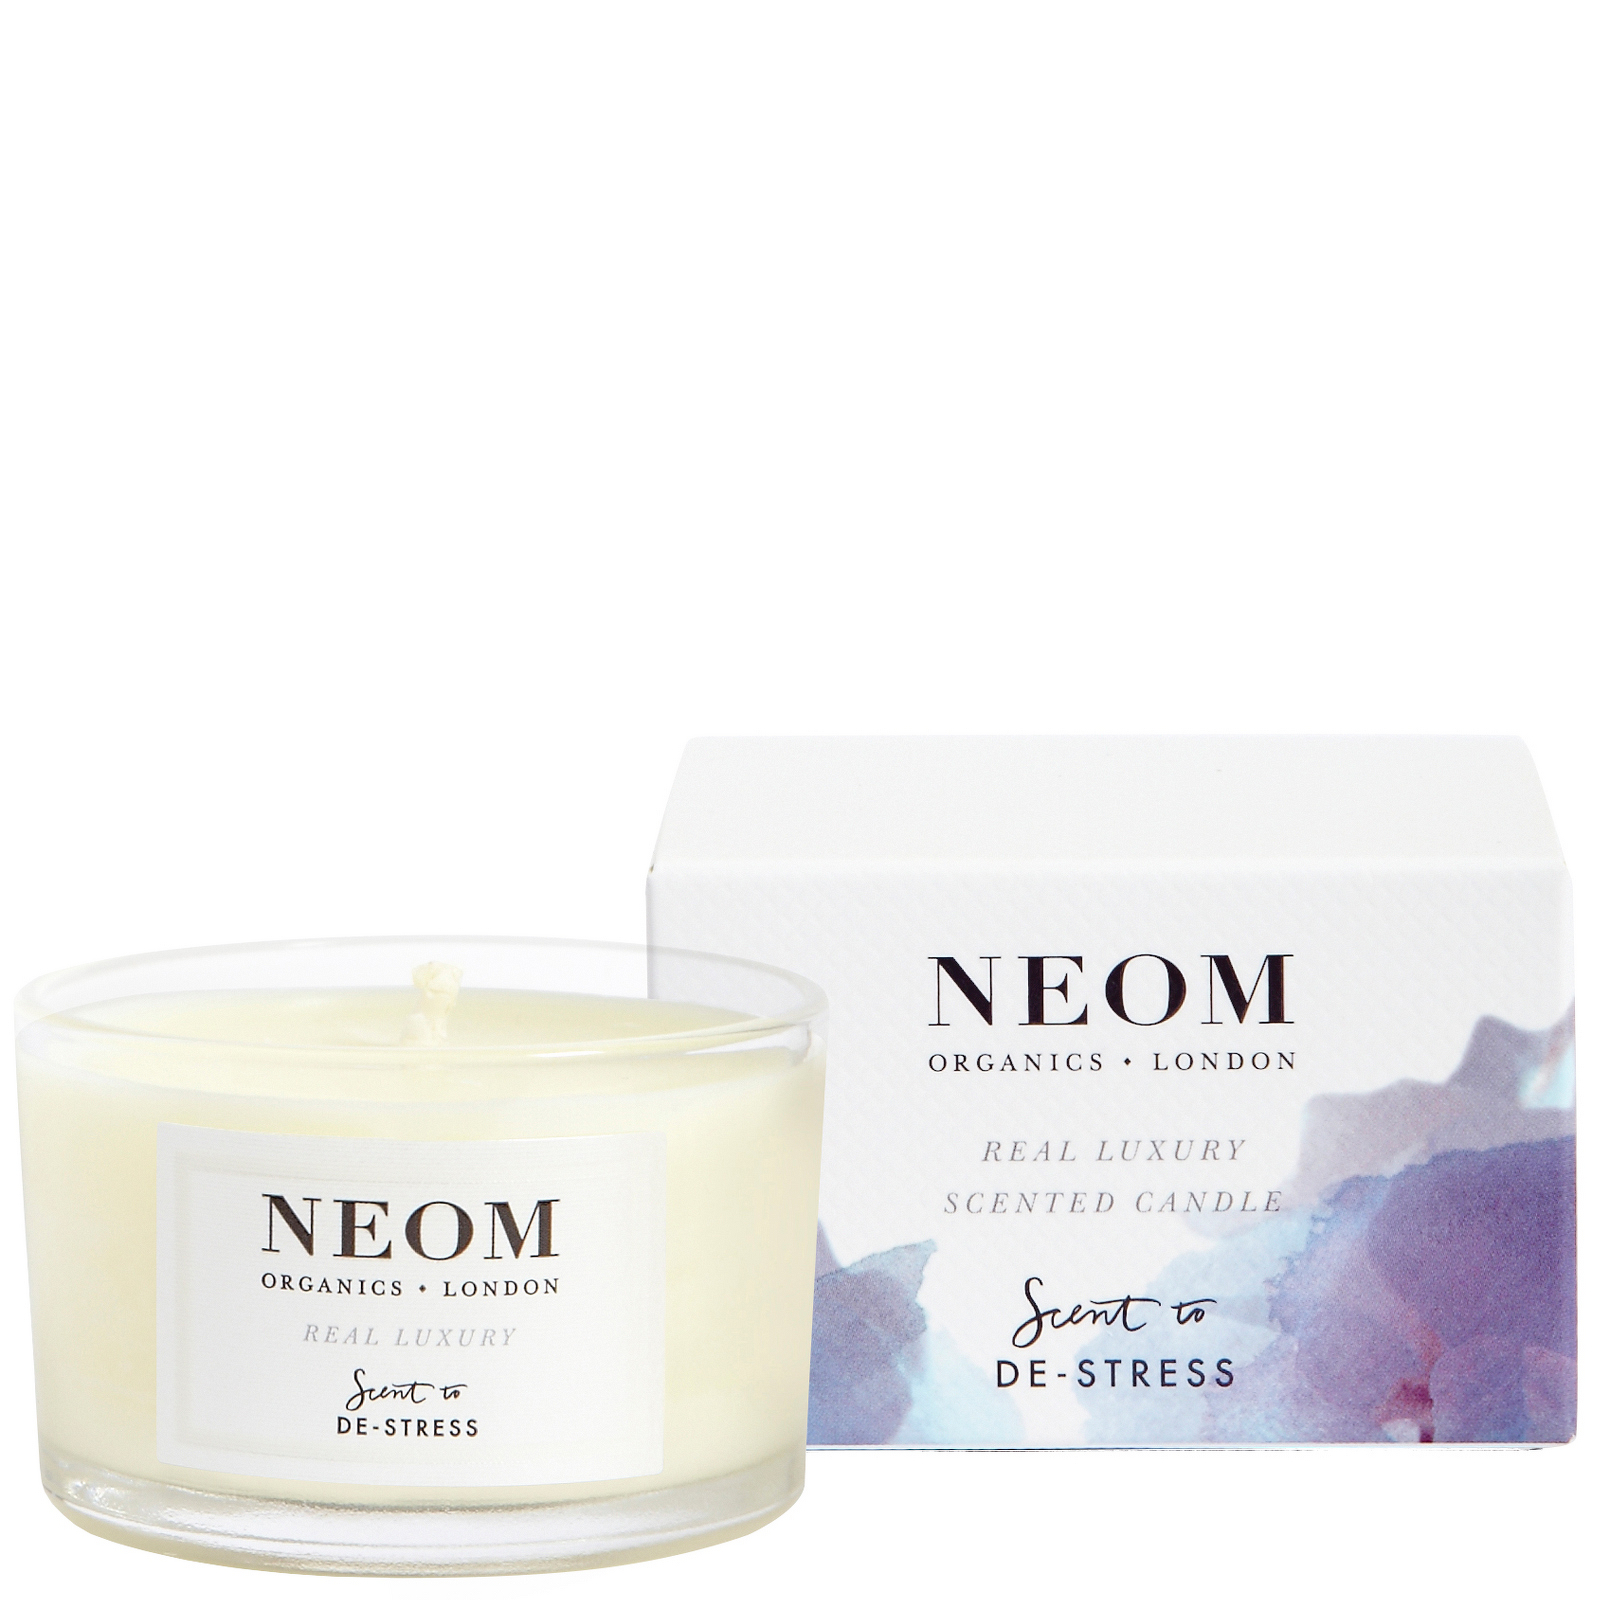 Neom Organics London Scent To De-Stress Real Luxury Candle (Travel) 75g